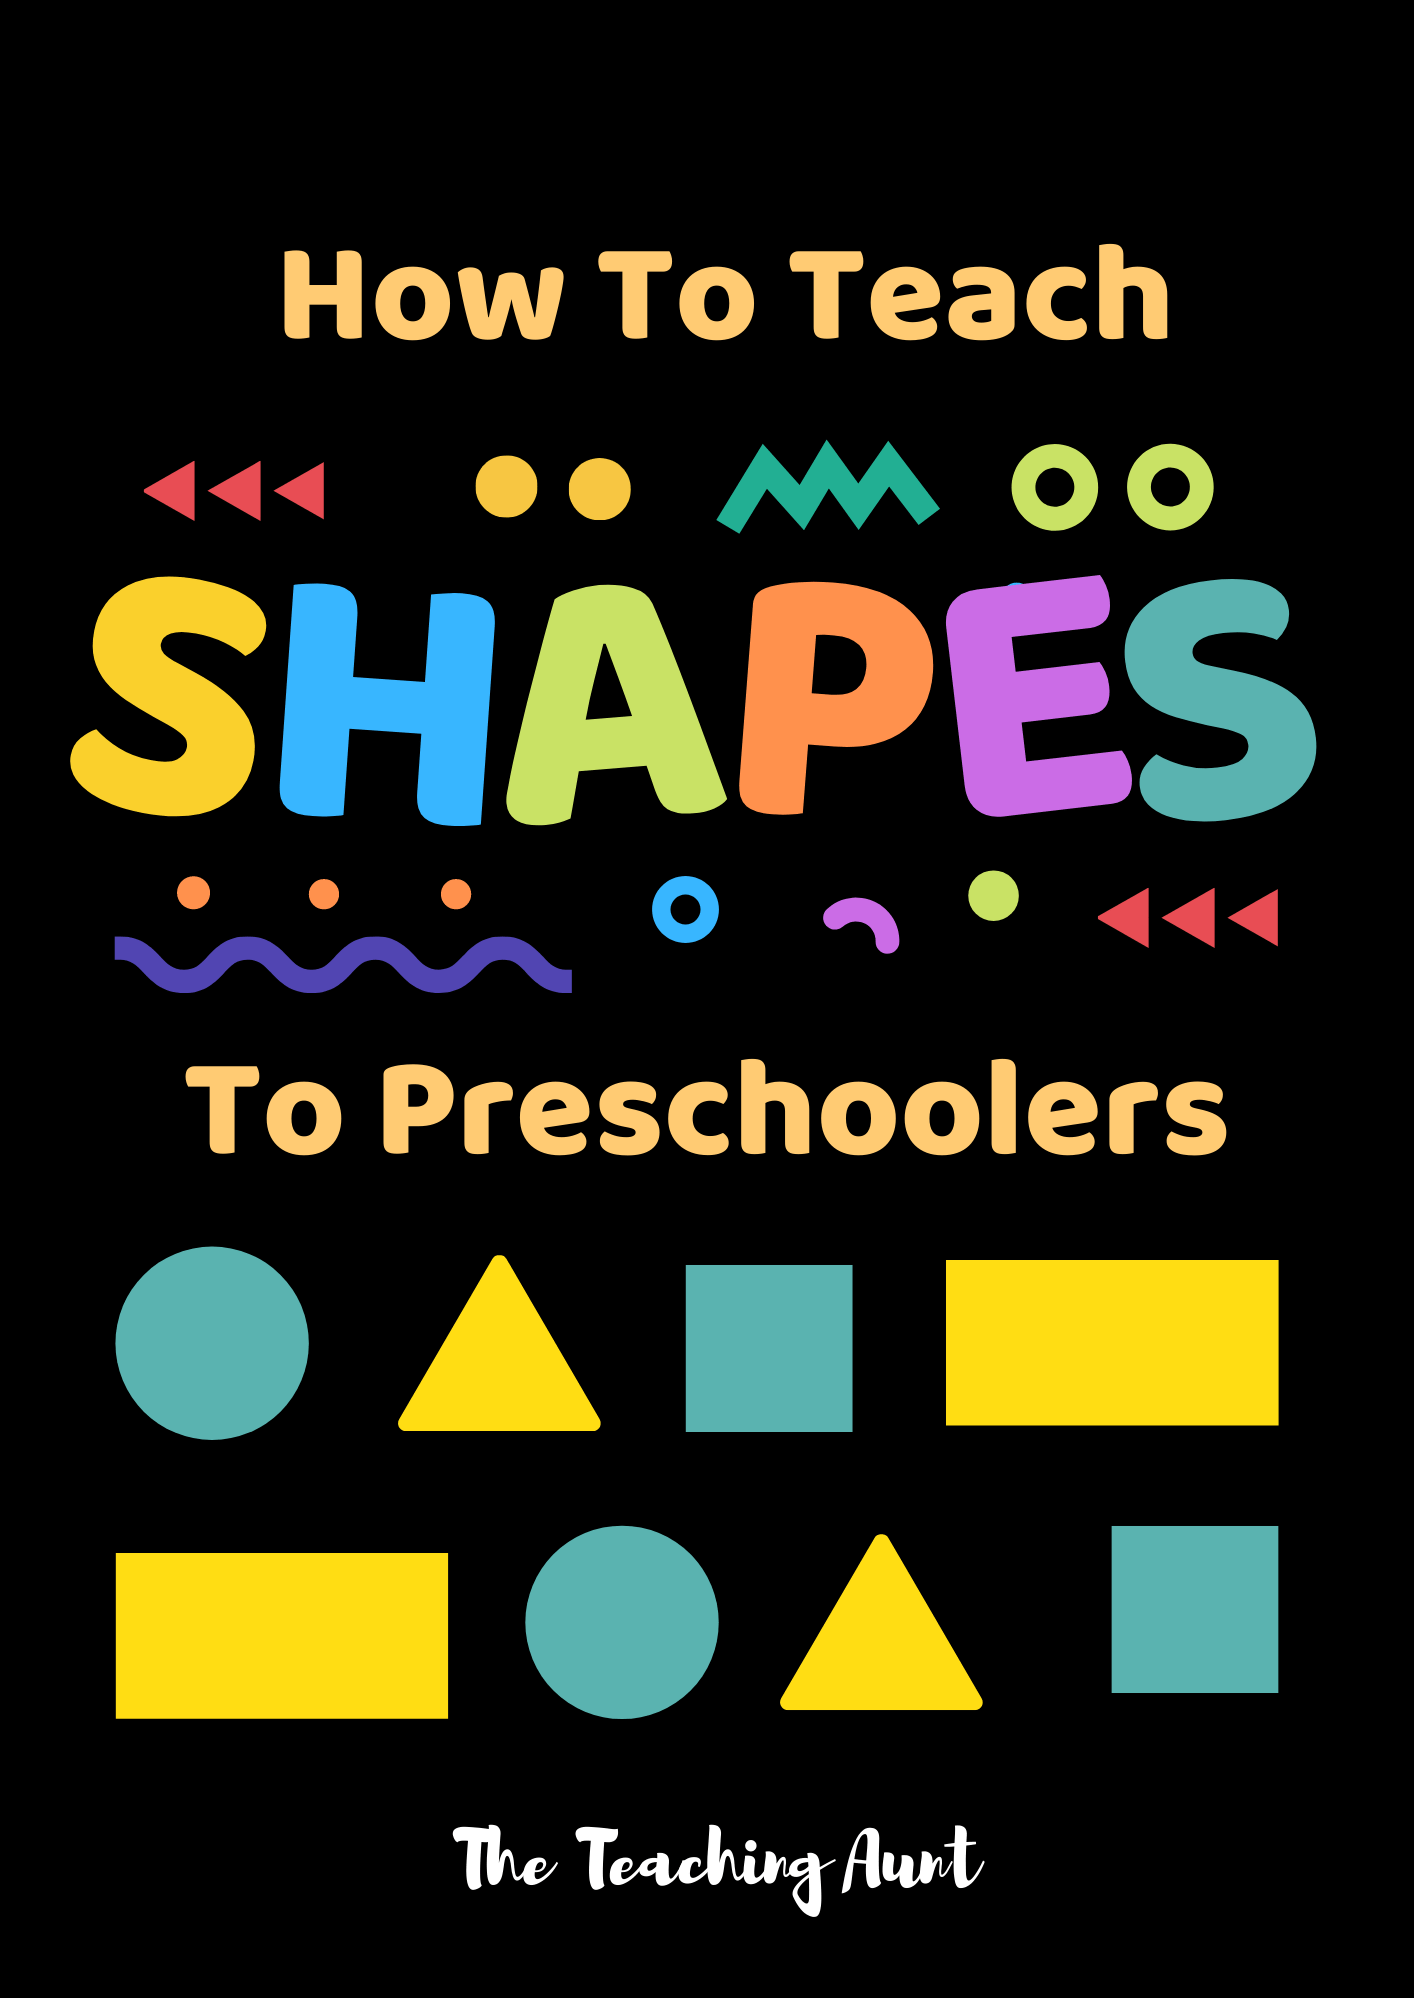 How To Teach Basic Shapes To Preschoolers